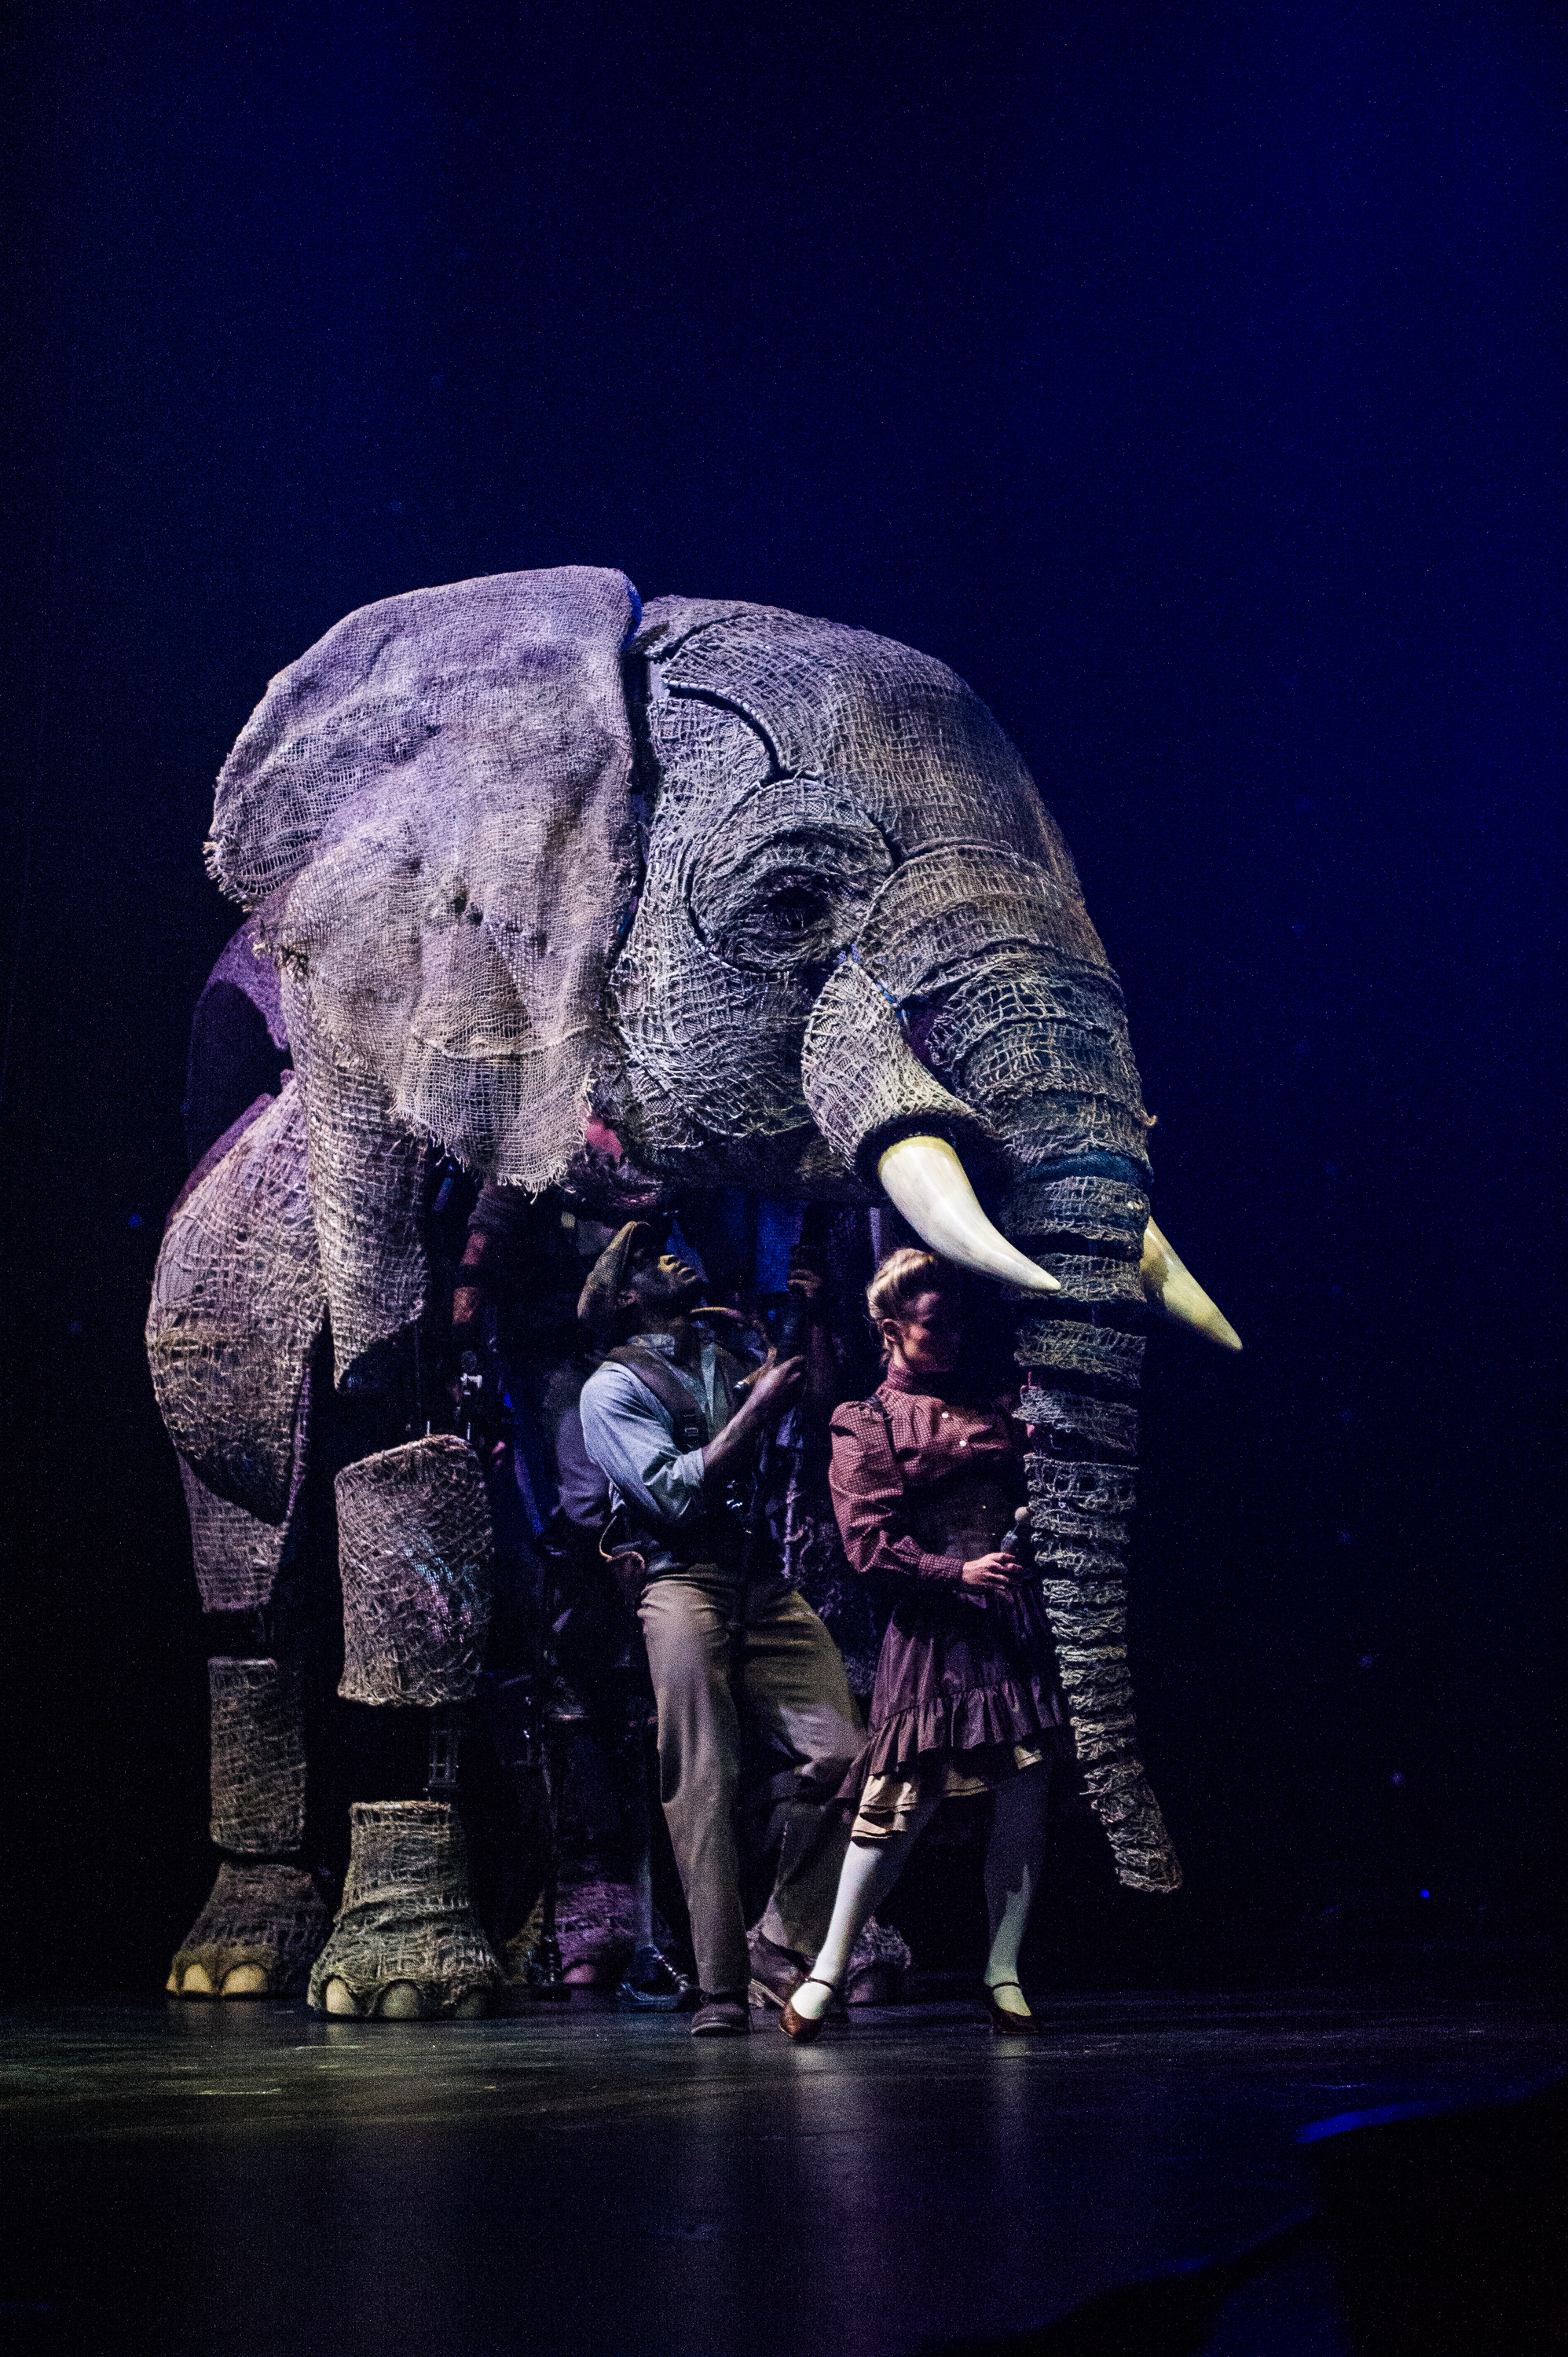 Get a new circus experience with Circus 1903